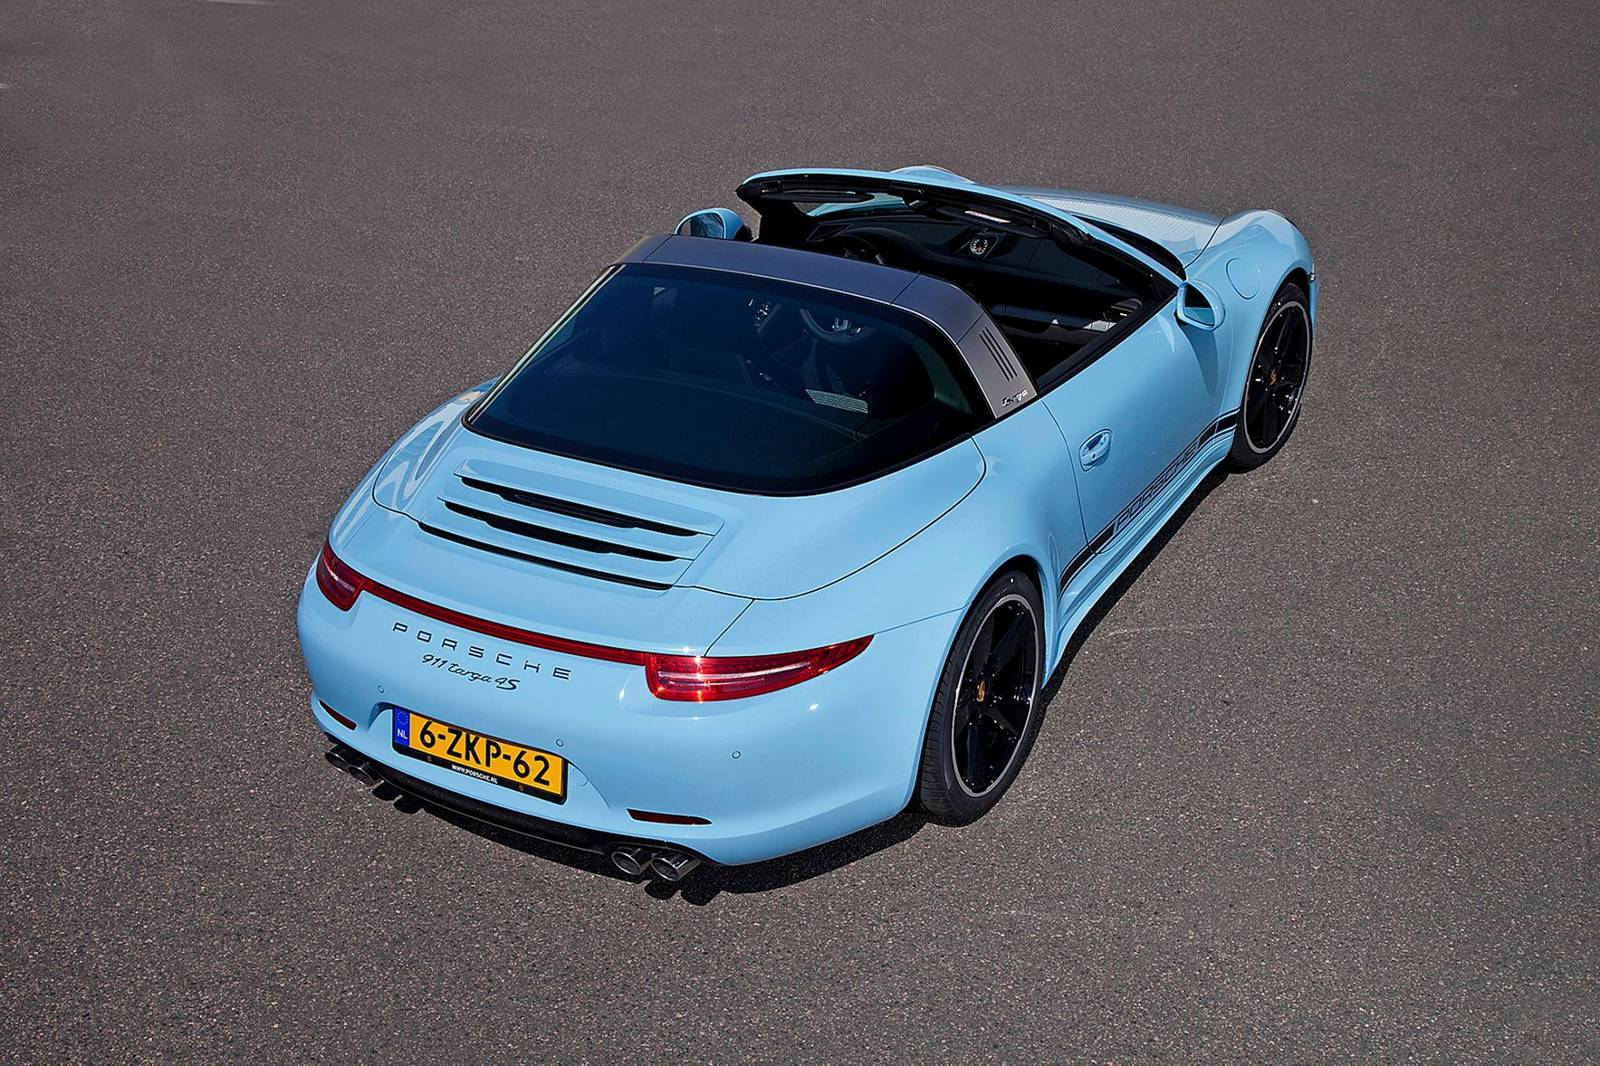 Porsche 911 Targa 4s Exclusive Edition 14 15